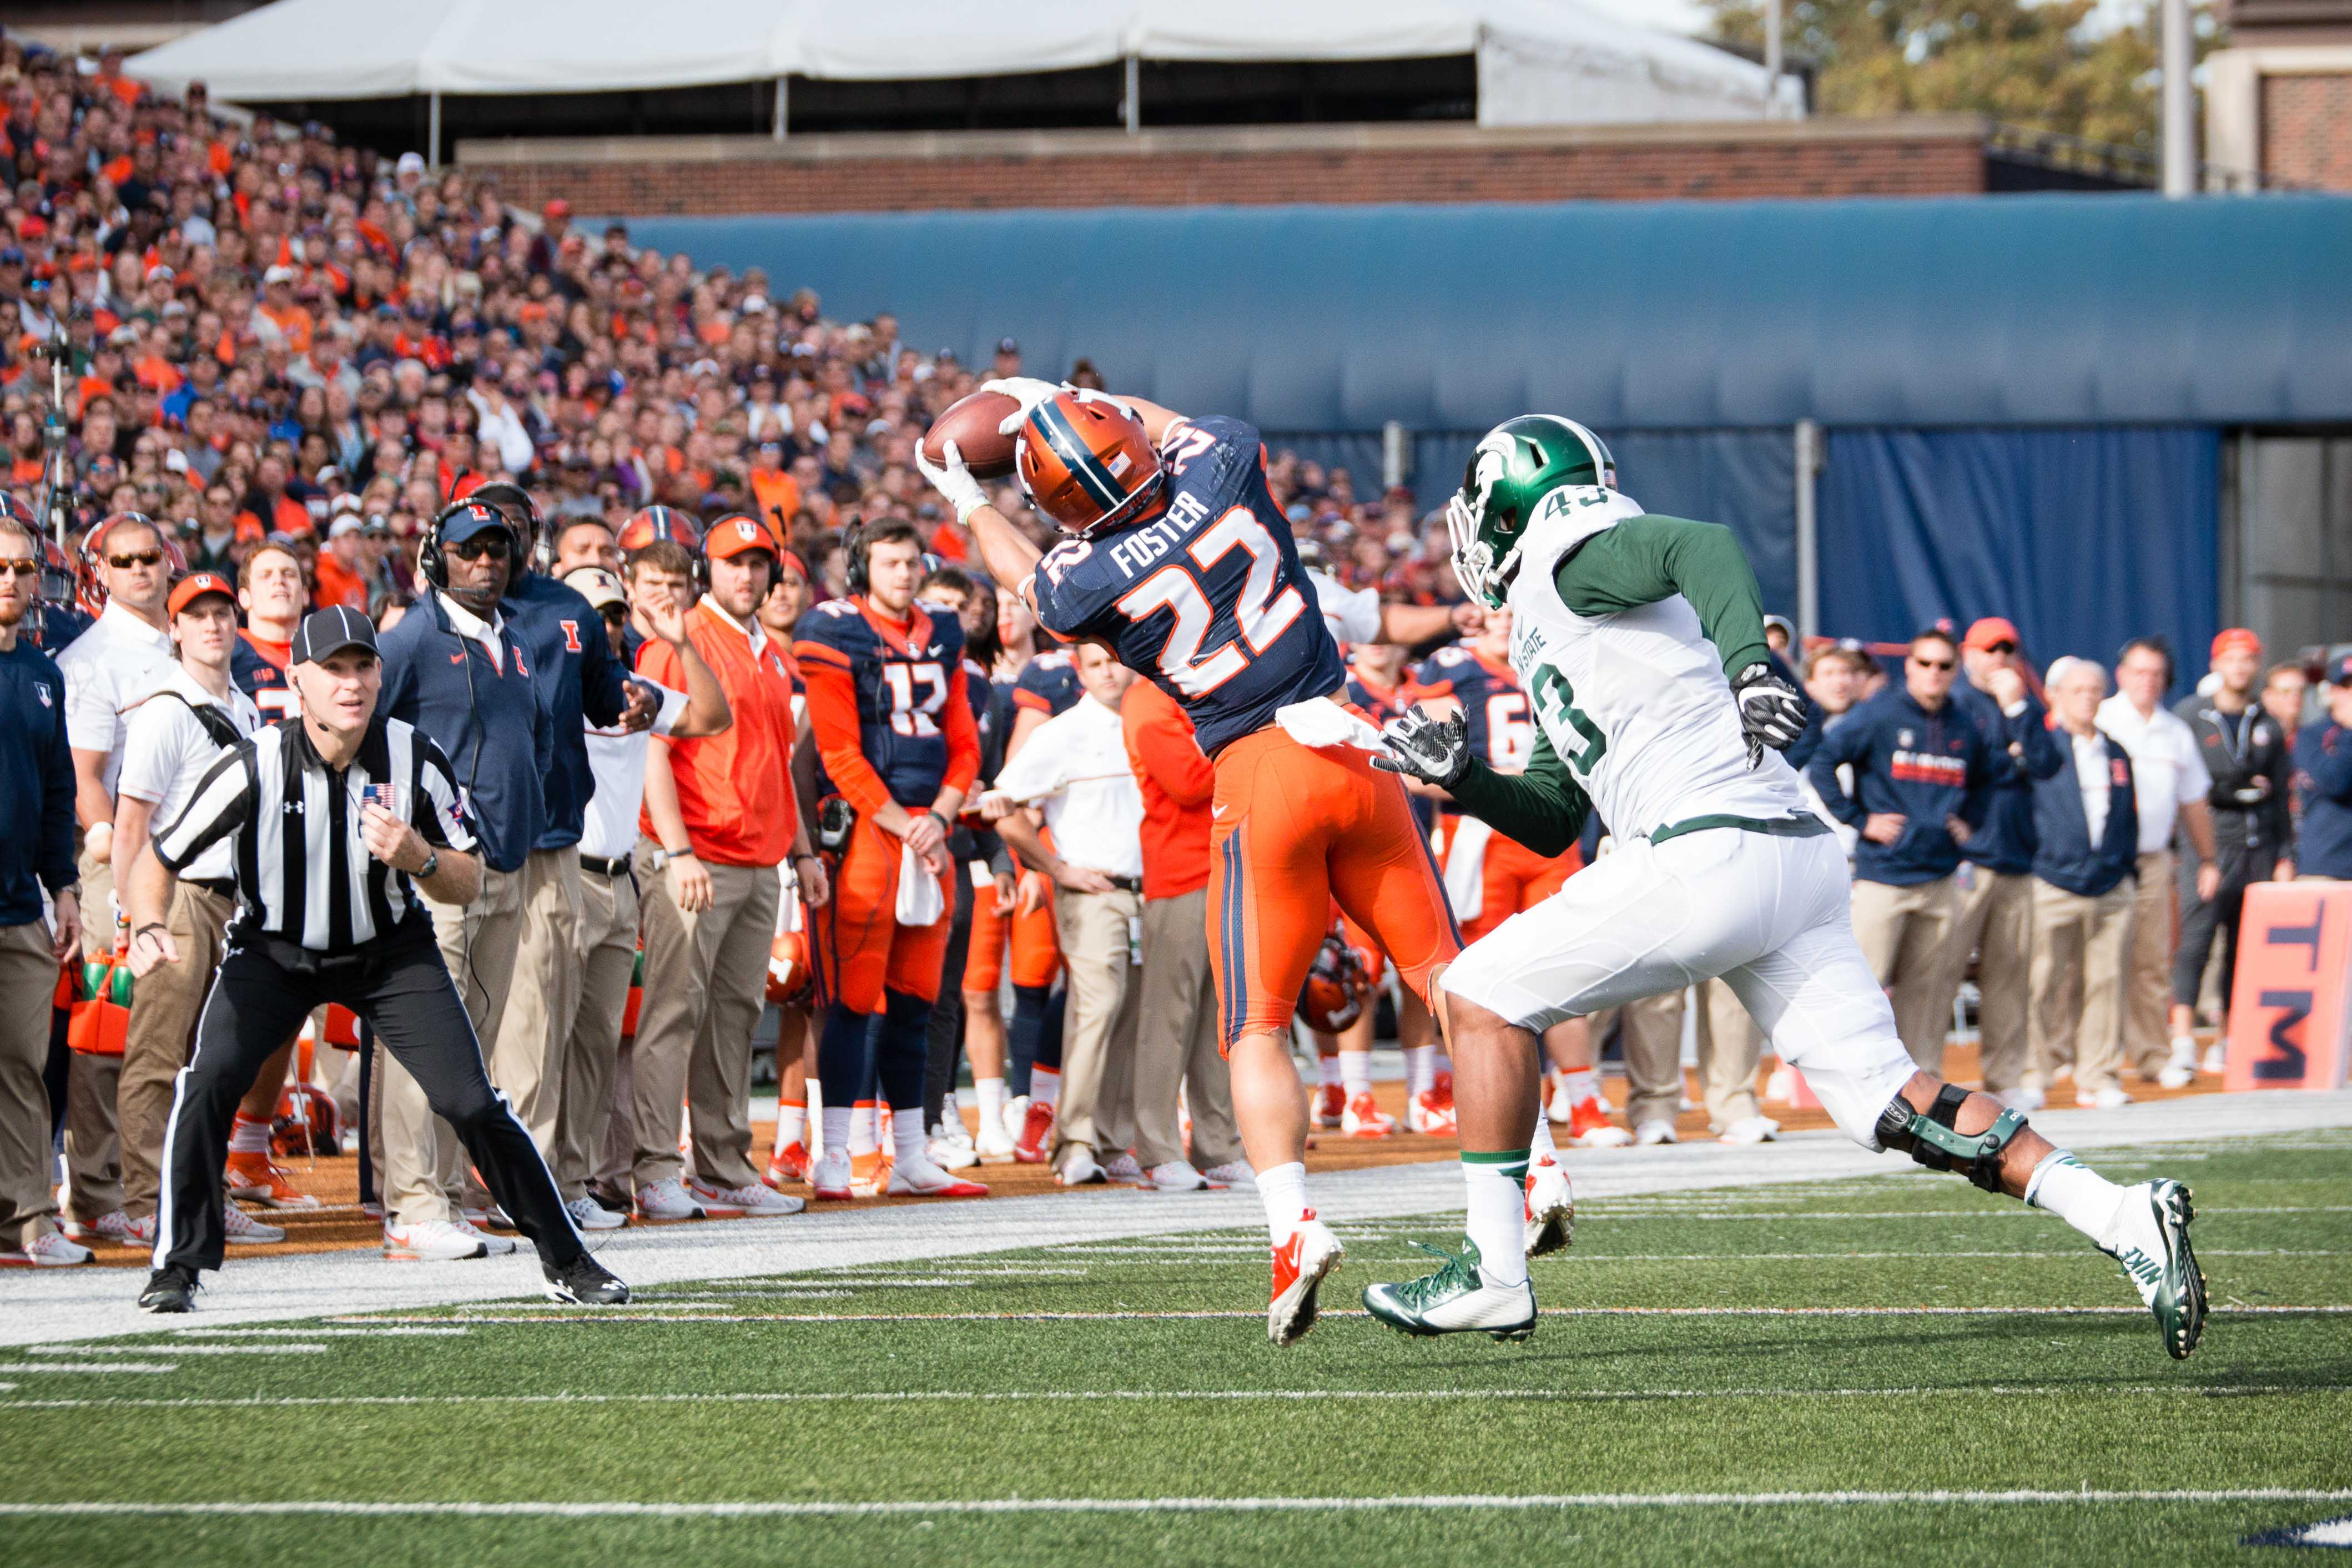 Illinois running back Kendrick Foster catches a pass during the game against Michigan State at Memorial Stadium on Saturday, Nov. 5. Foster received the Mental Toughness Award for his actions off the field.